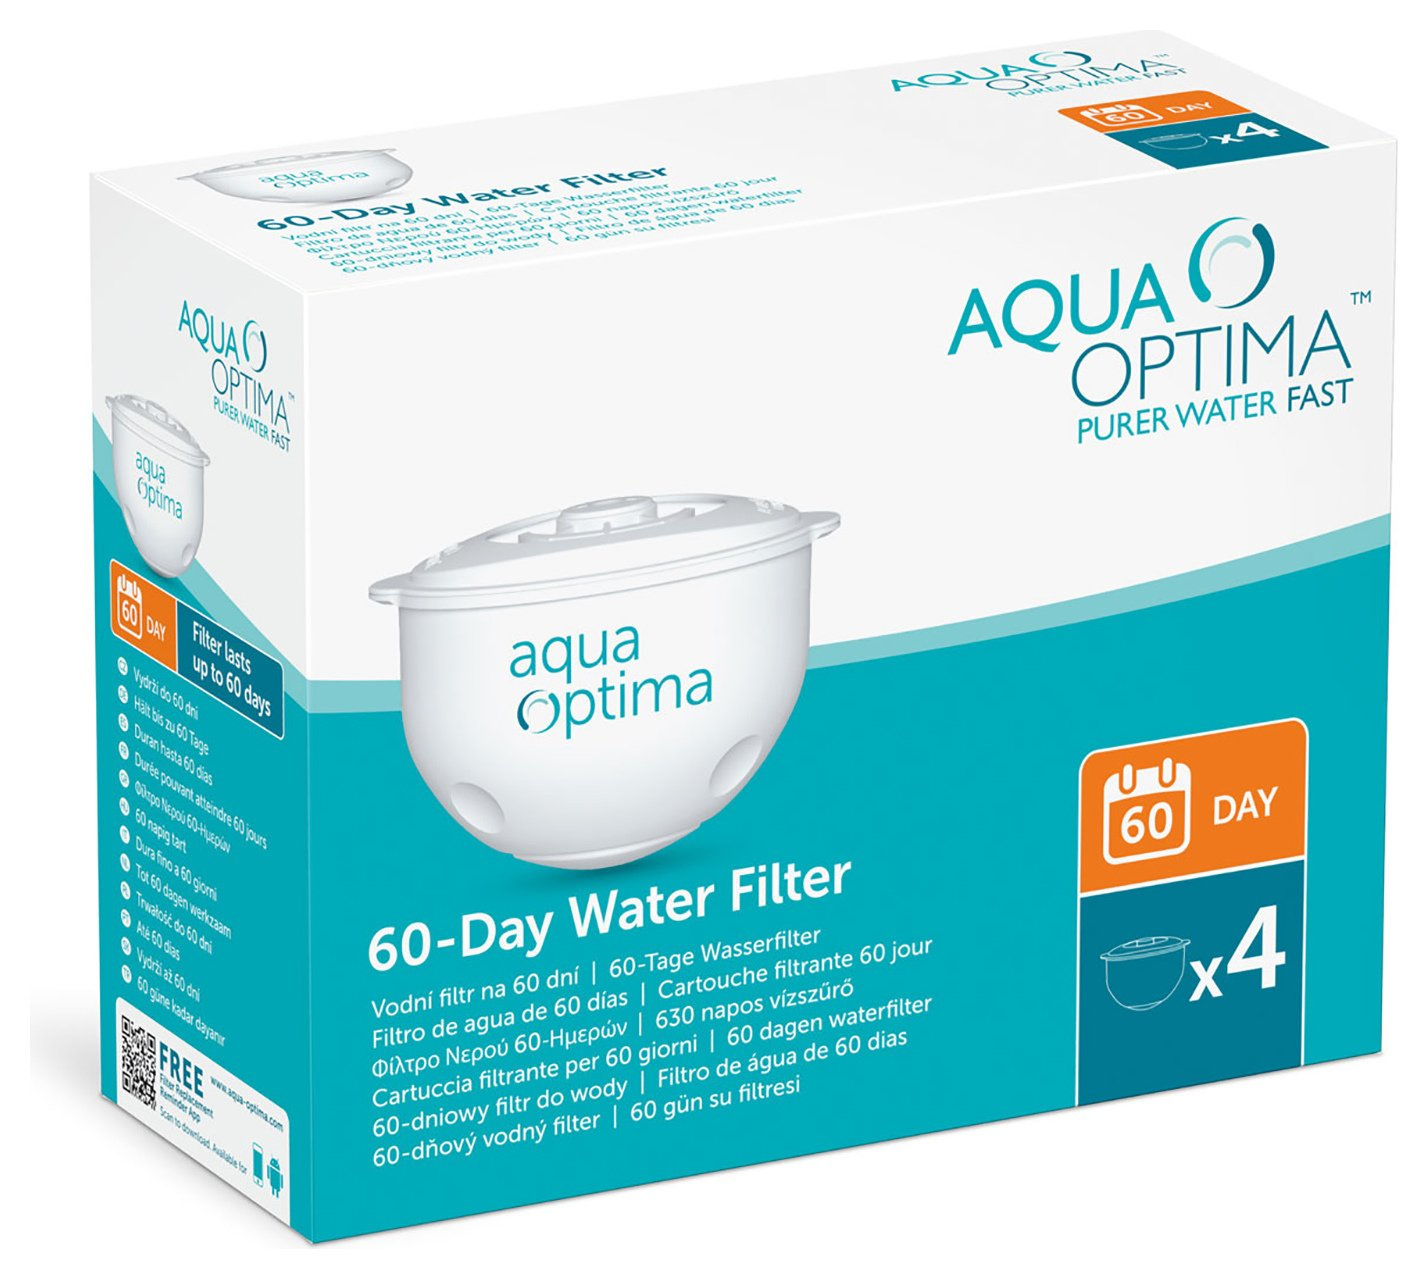 Image of Aqua Optima - 60 Day Water Filter - 4 Pack